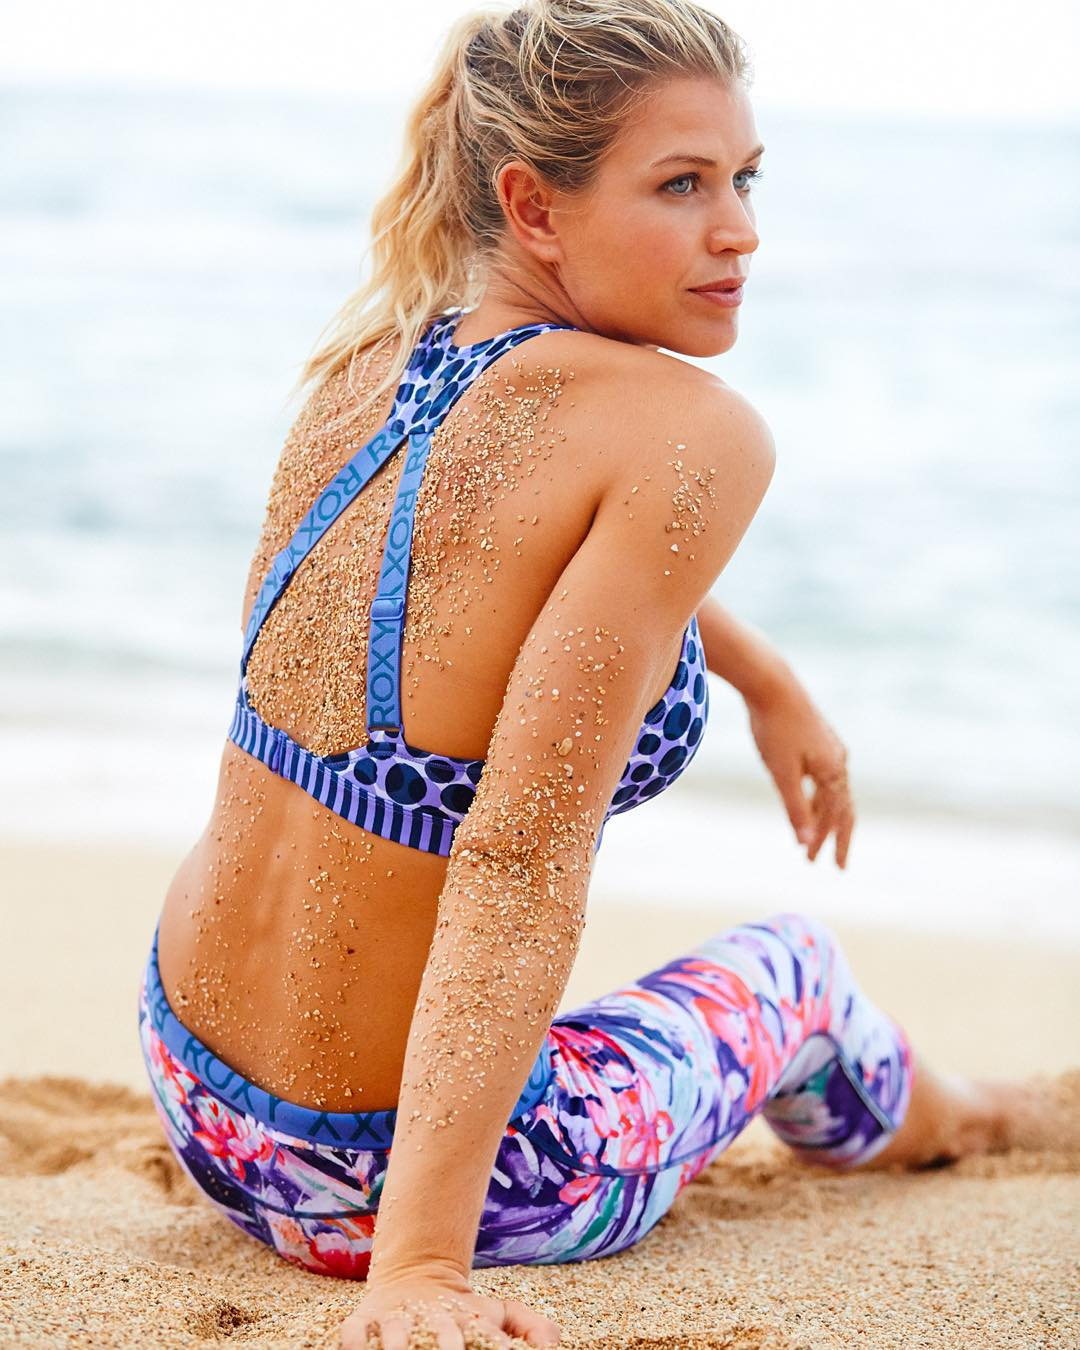 Are you #ROXYready for a stretch on the beach? Sign up for a #RUNSUPYOGA event in Hossegor, Okinawa, Sydney or Panama and get set to say Namaste in style.  roxy.com/runsupyoga